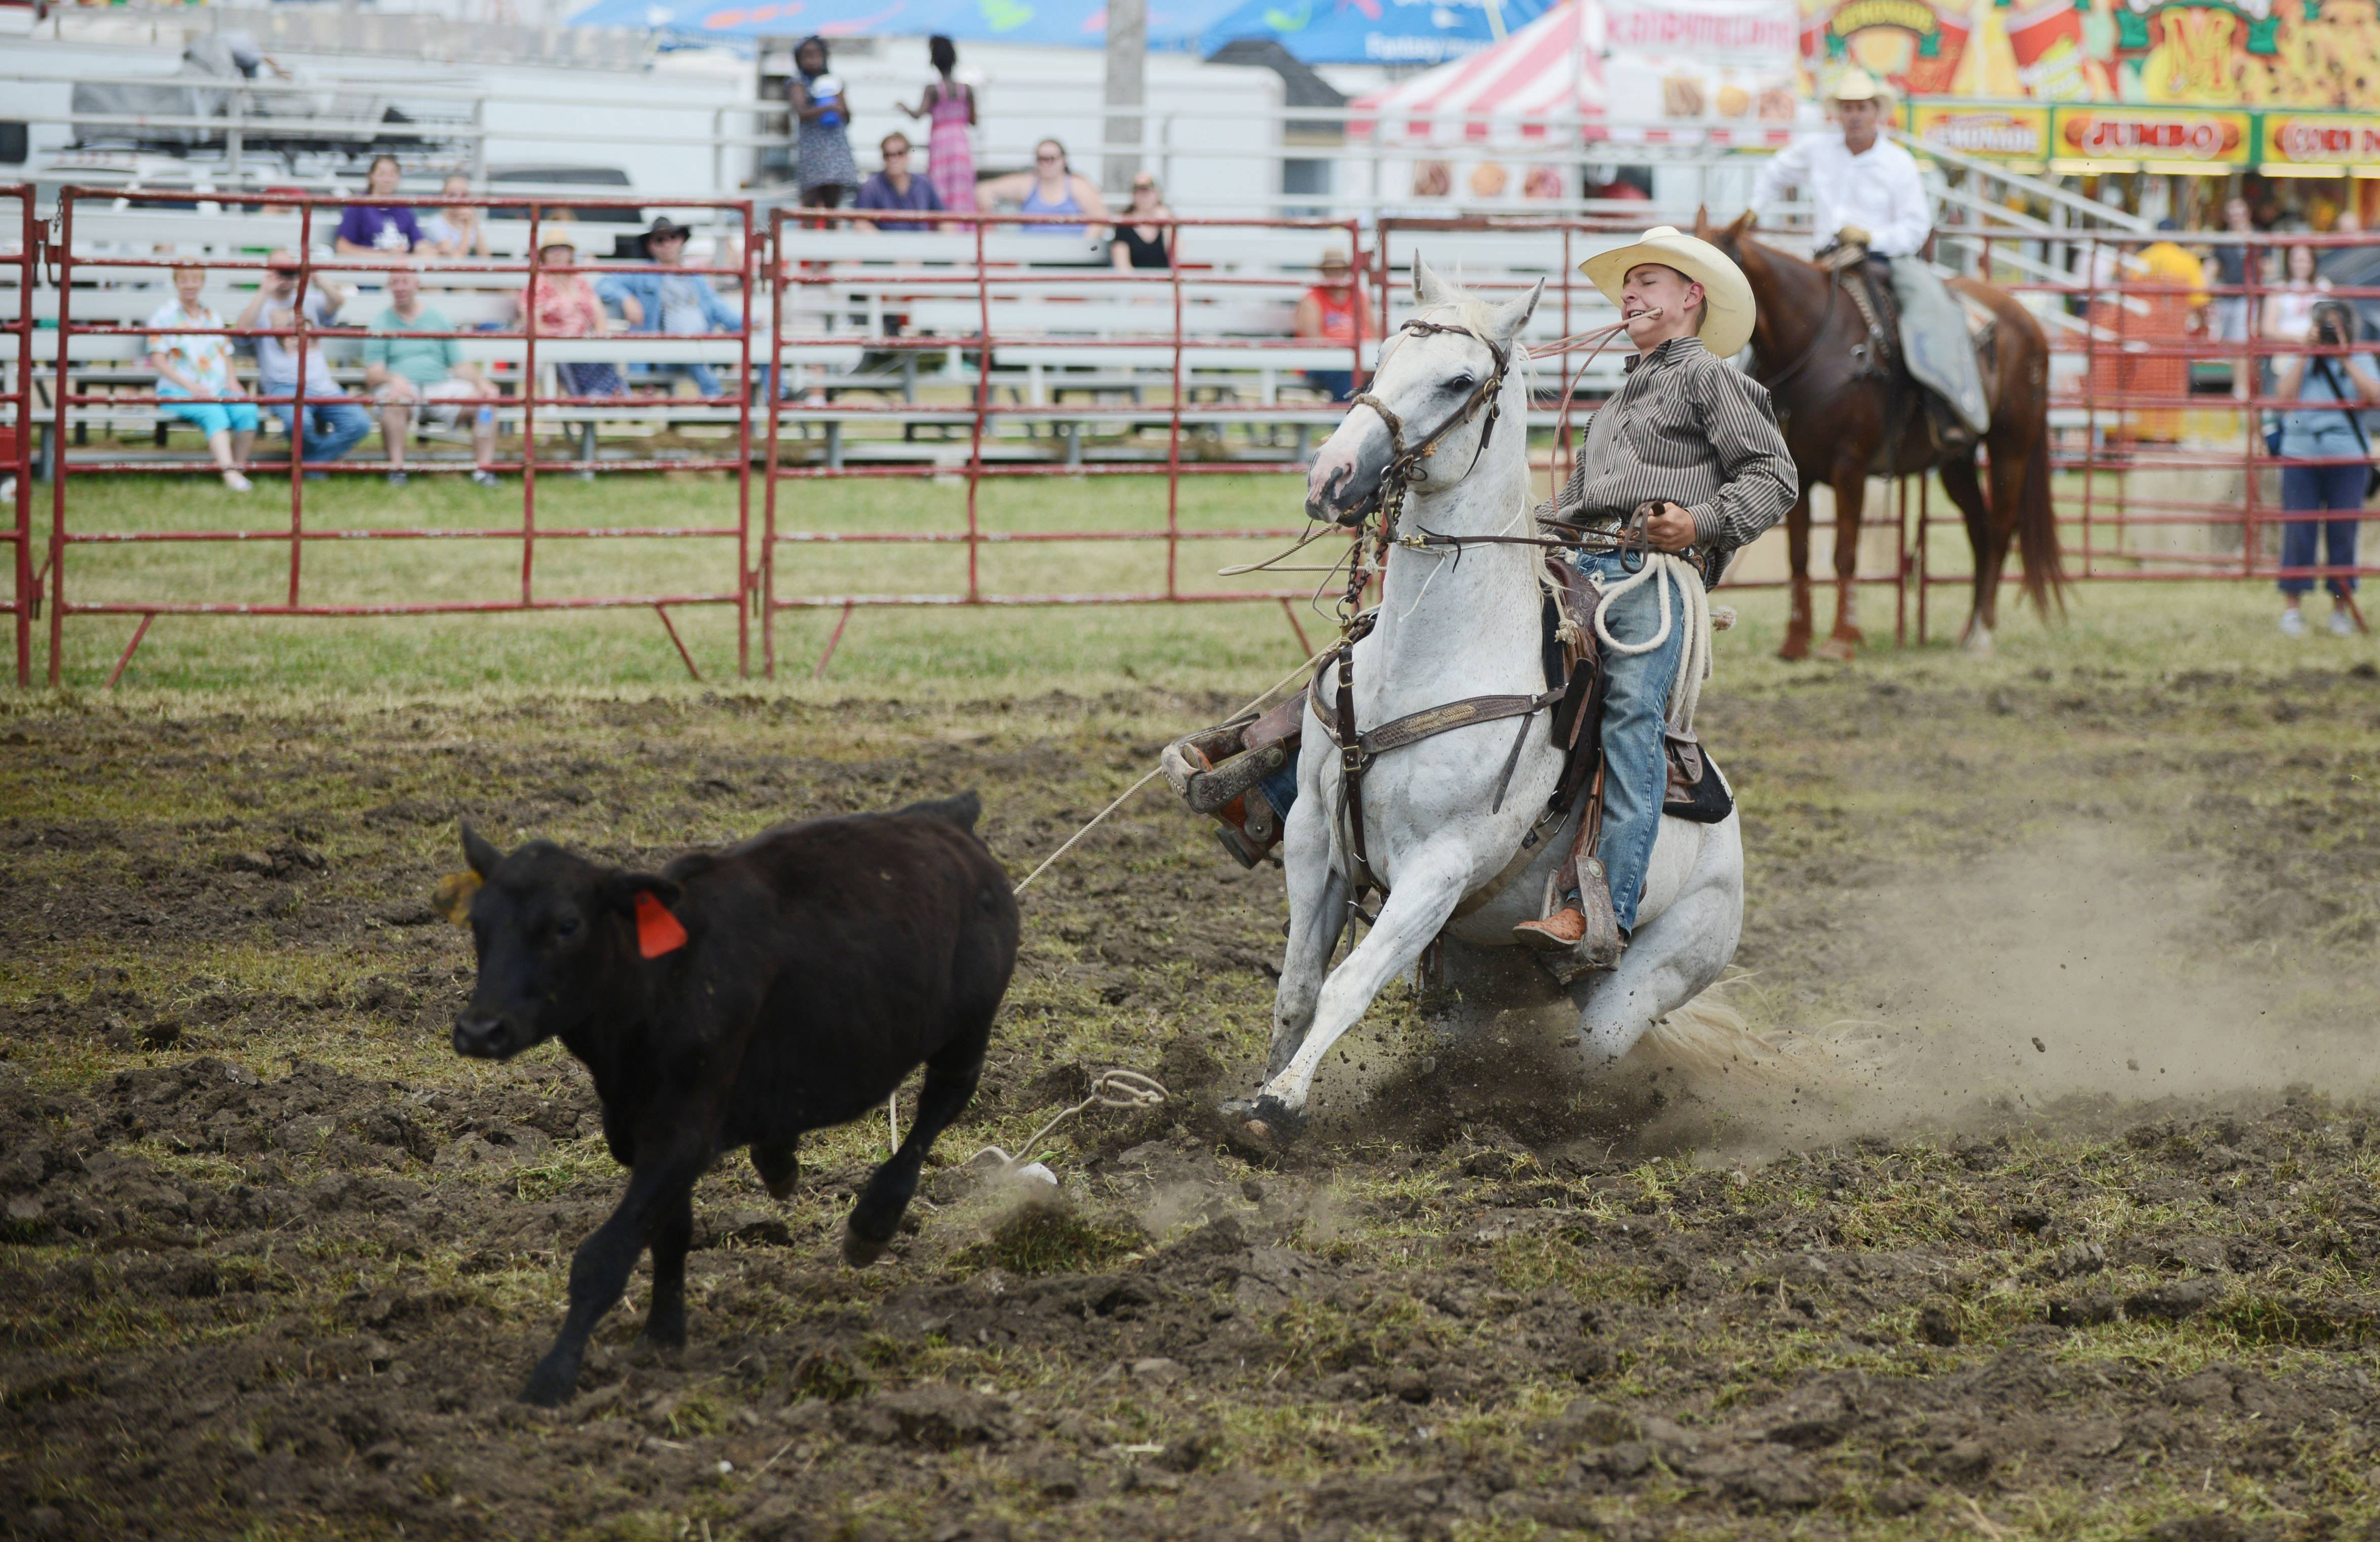 A cowboy demonstrates roping Saturday at the DuPage County Fair in Wheaton.